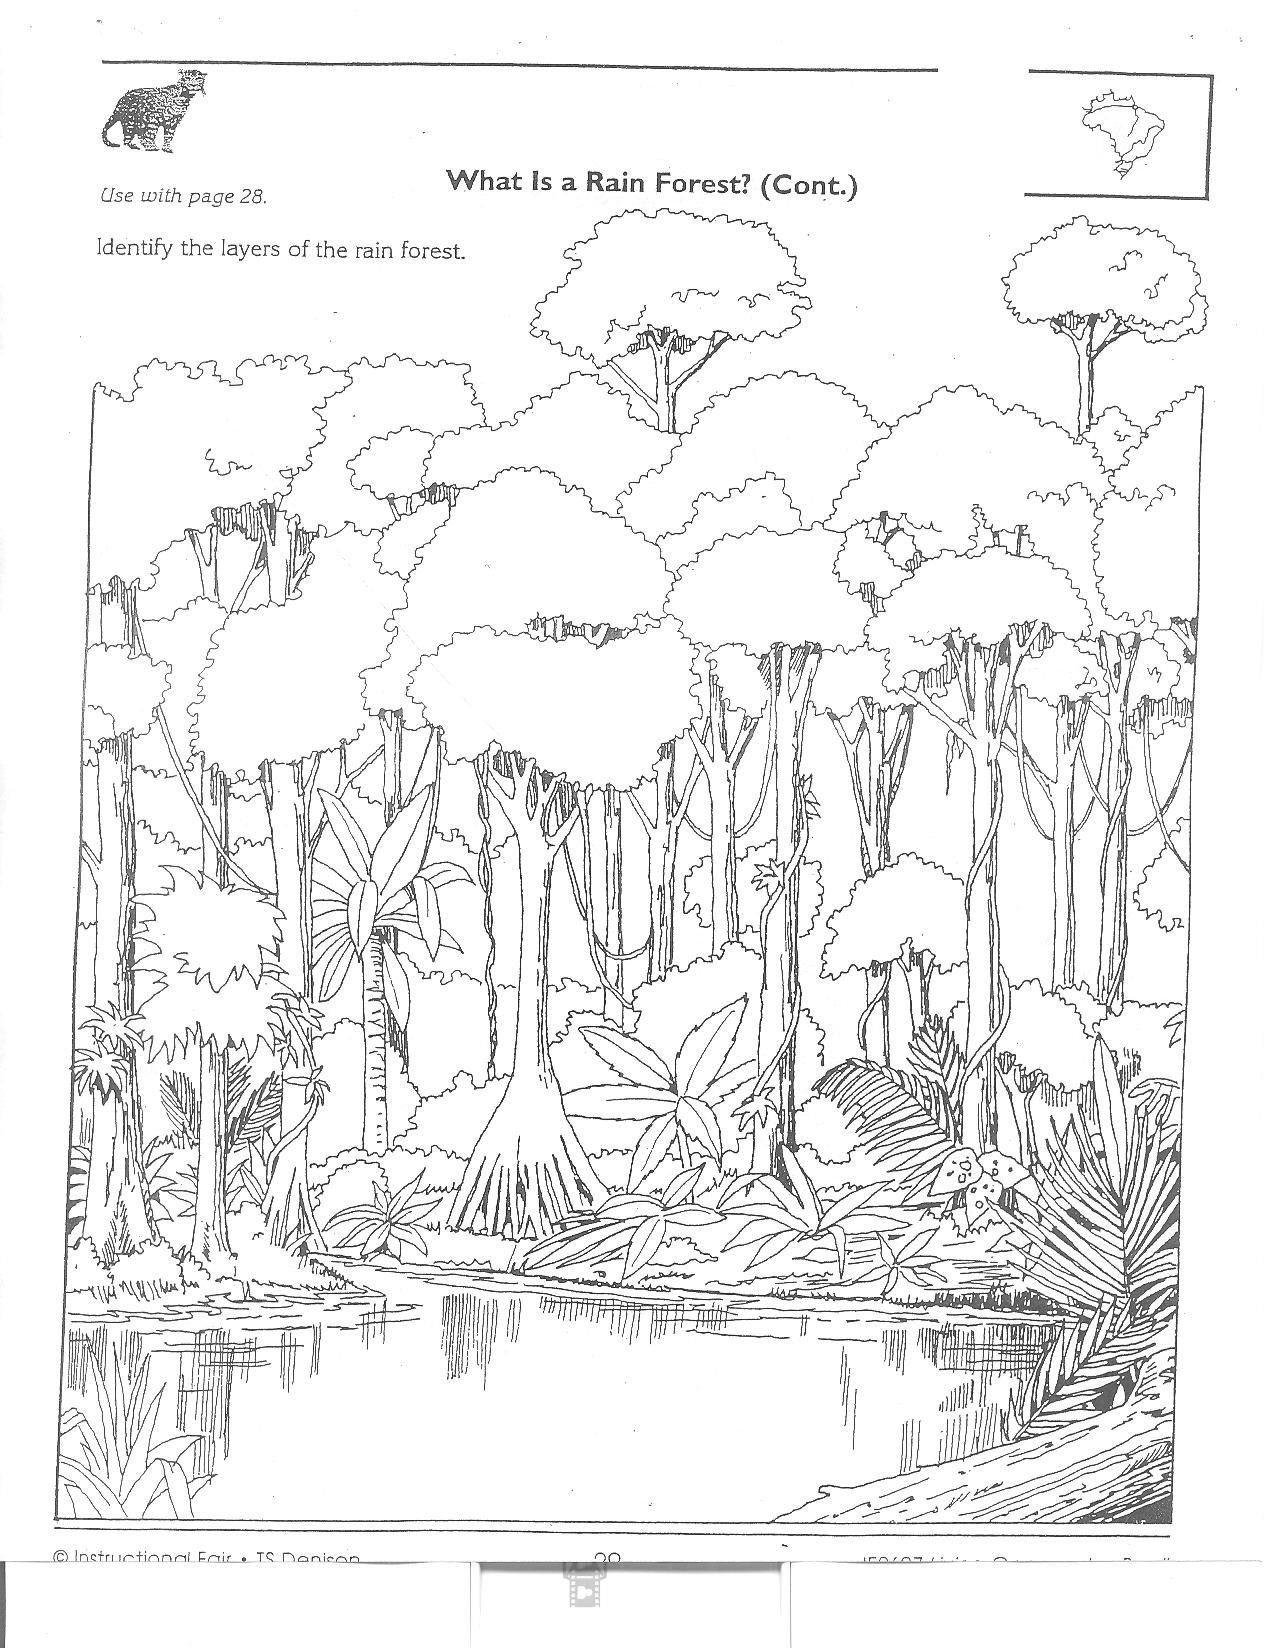 Rainforest Worksheets for Kindergarten Amazon Rainforest Packet 2 1264—1648